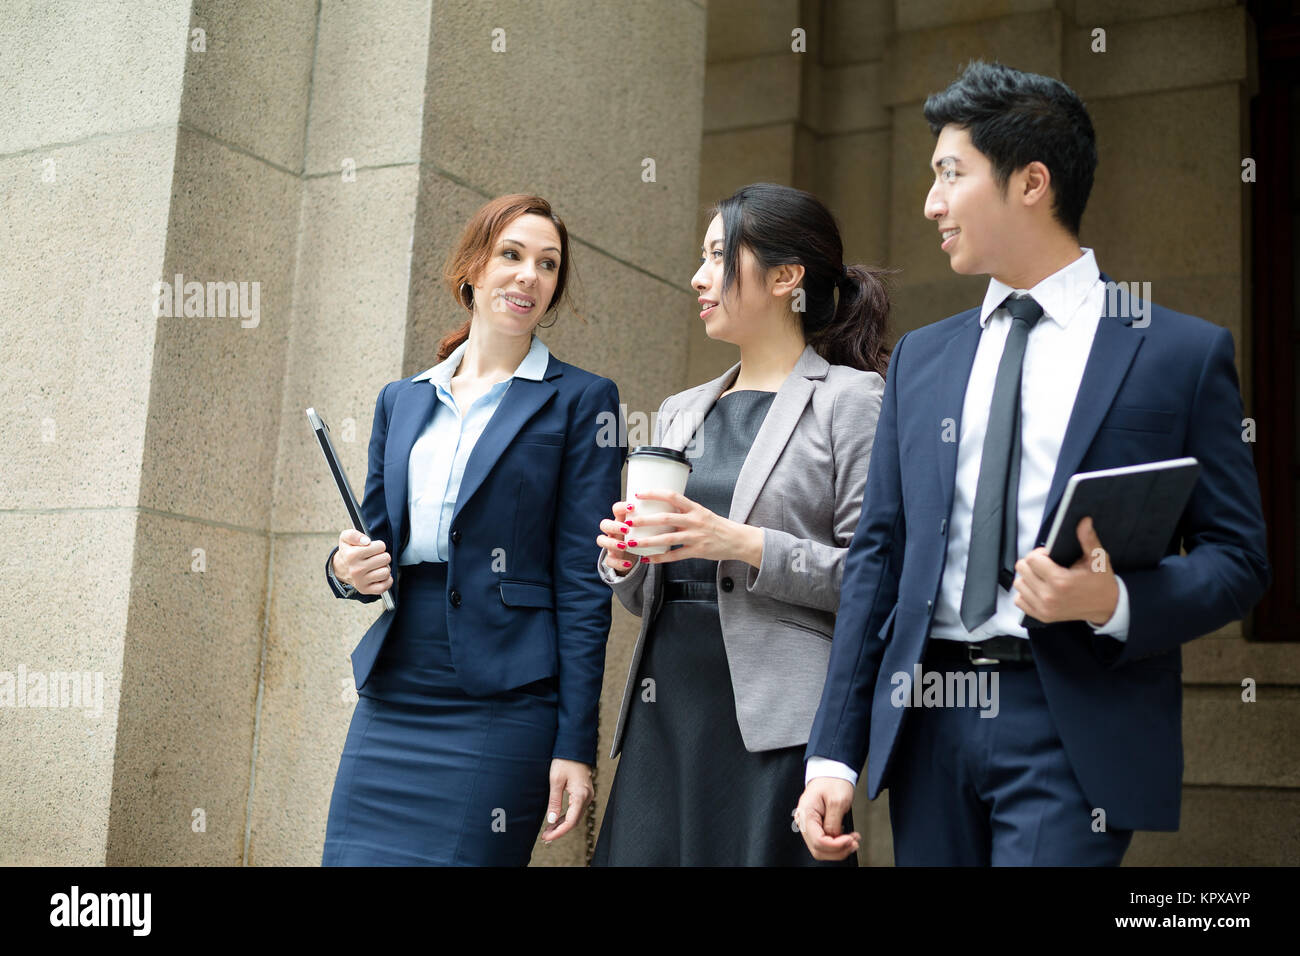 Group of business people walking out of office - Stock Image